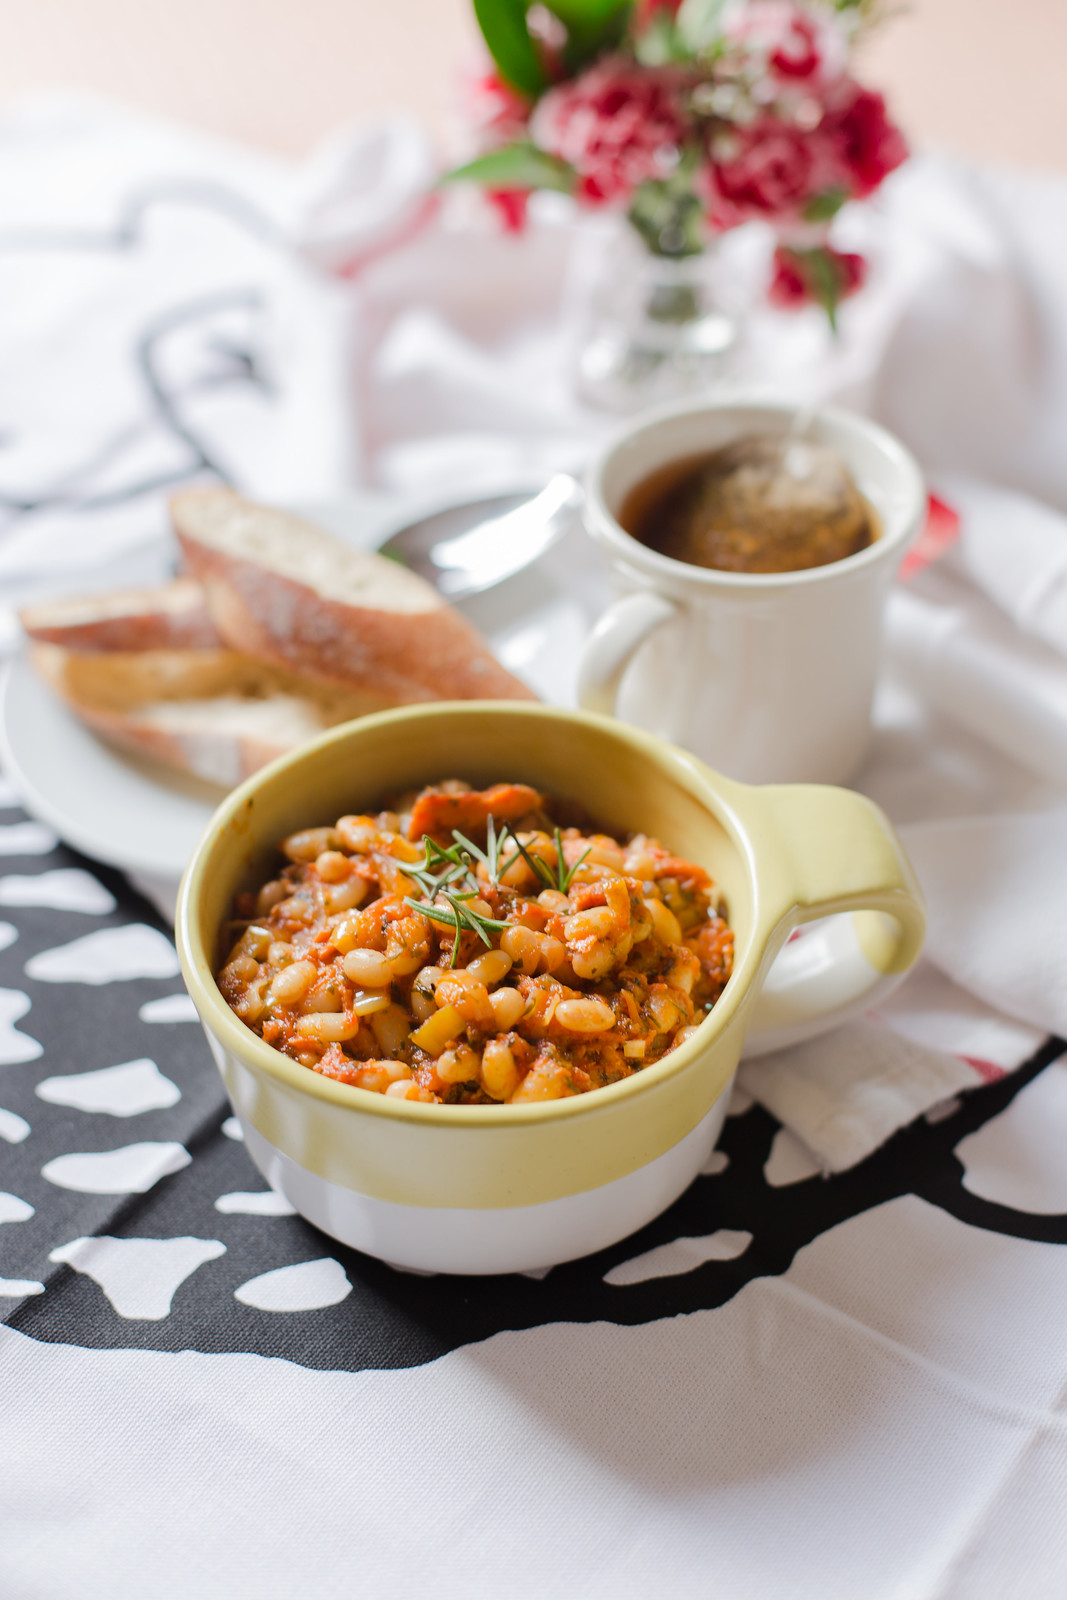 Harissa Spiced Great Northern Beans